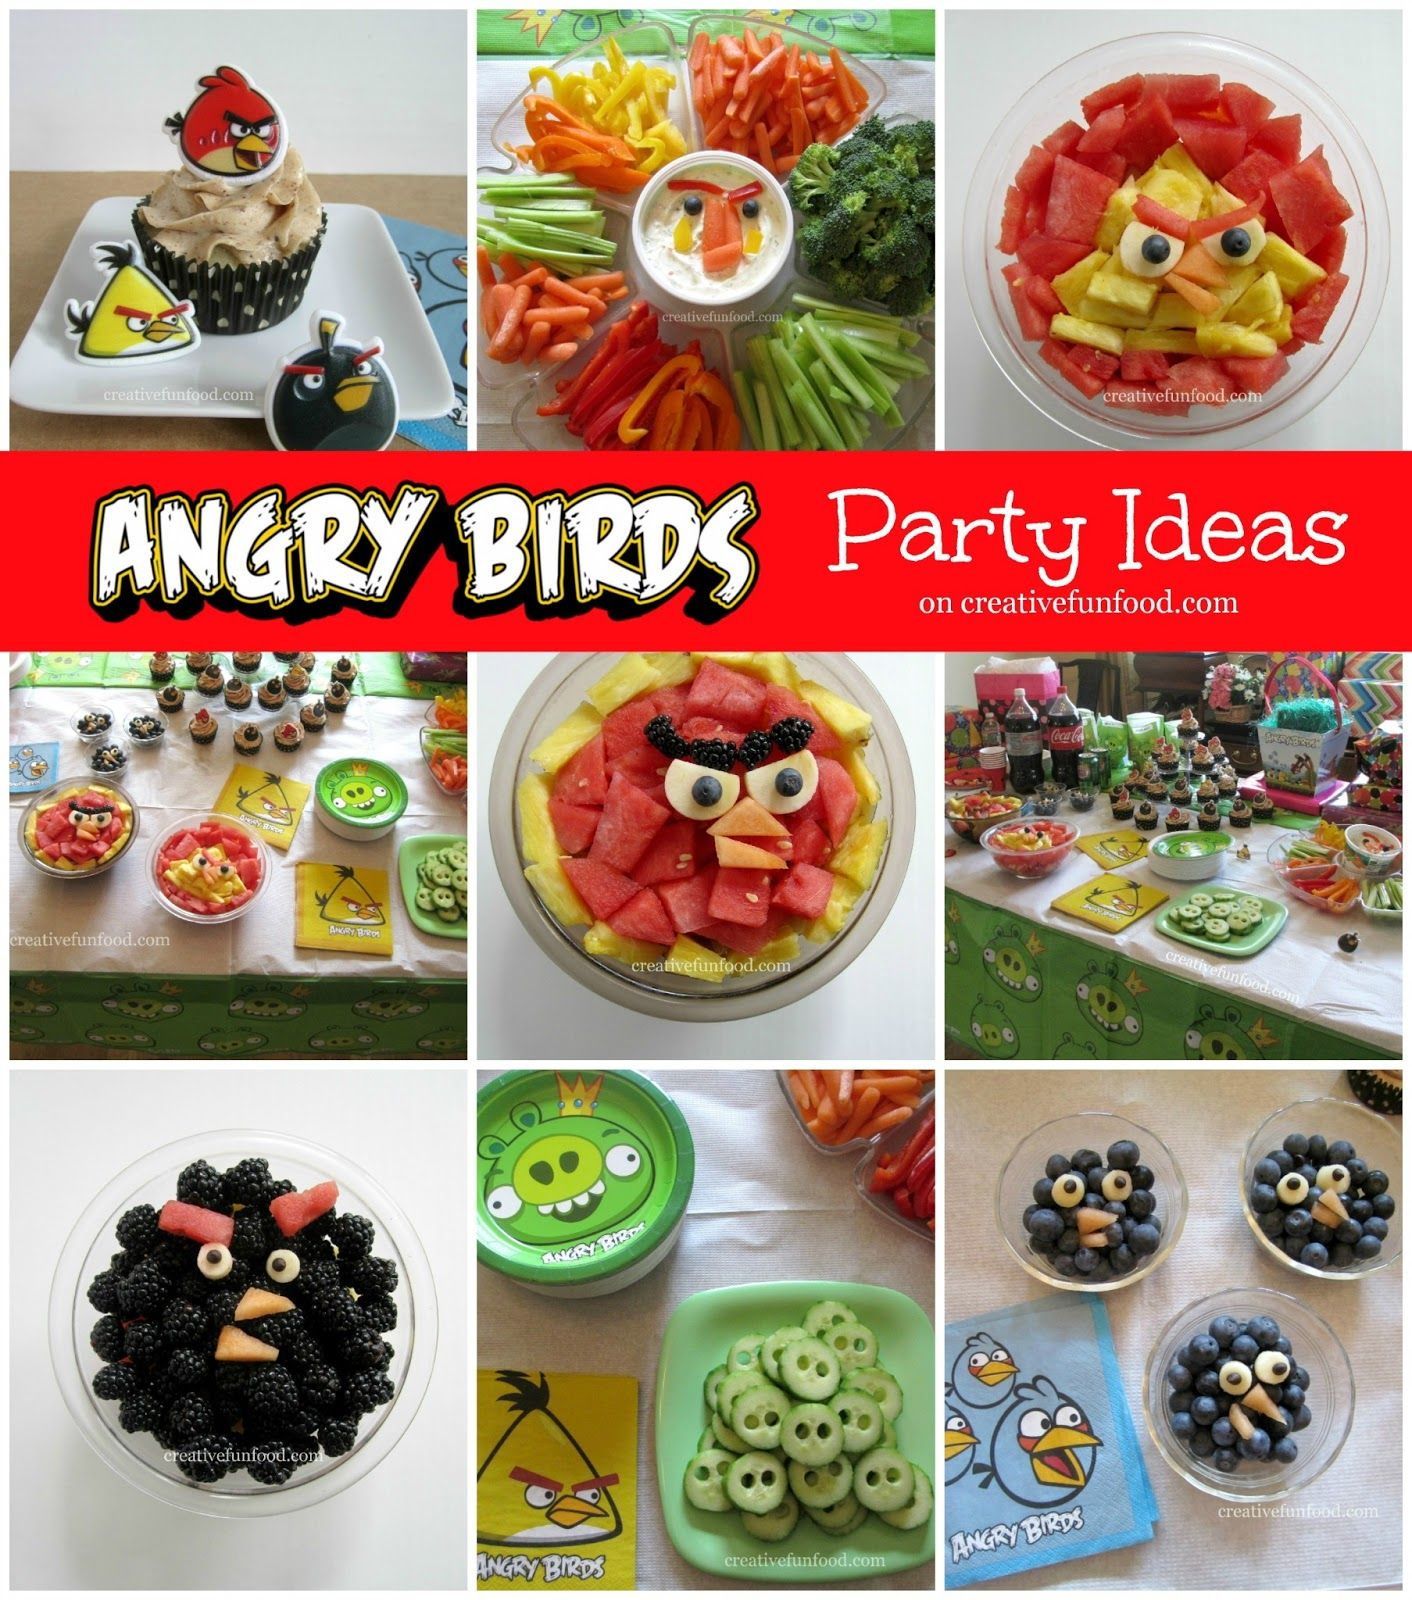 Angry Birds Birthday Party Ideas On Creativefunfood Healthy And Simple